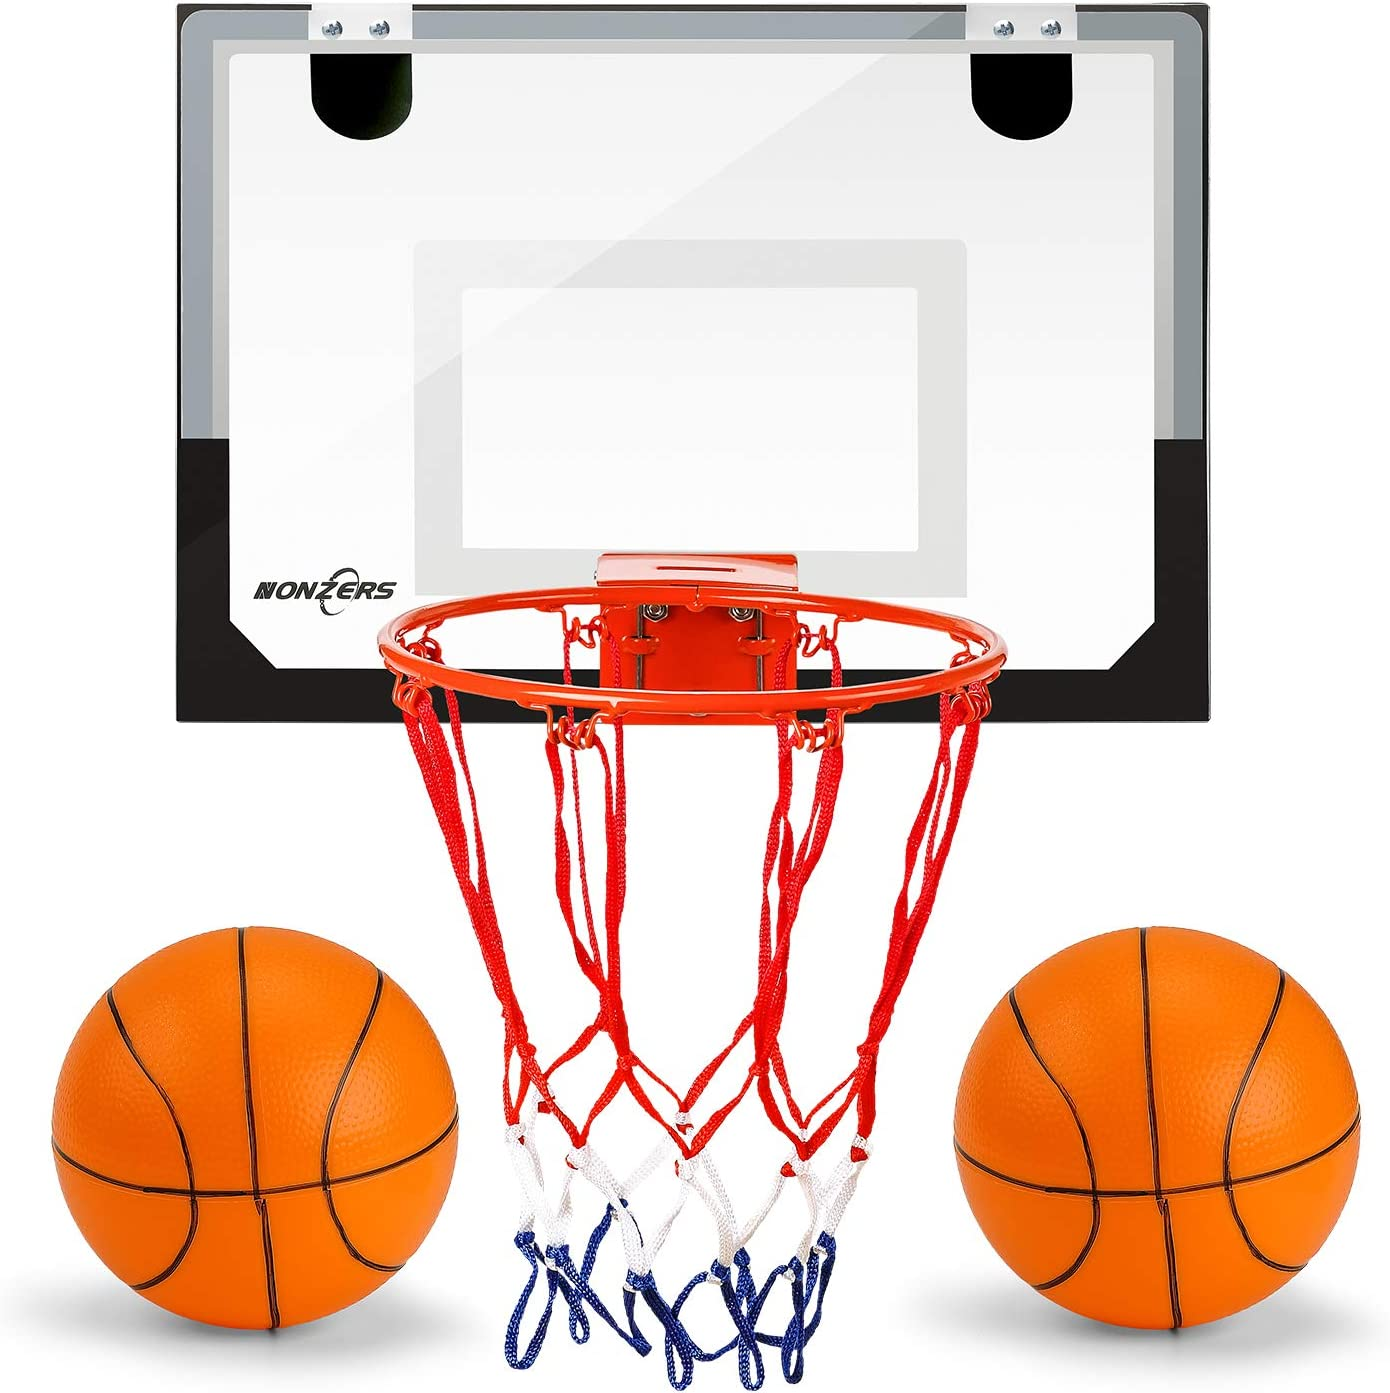 NONZERS Mini Basketball Hoop for Door & Wall, Indoor Mini Basketball Hoop Set for Home and Office Games, Includes 2 Mini Basketballs and Hand Pump, Mobile Mini-Hoop Gift for Kids Boys Girls